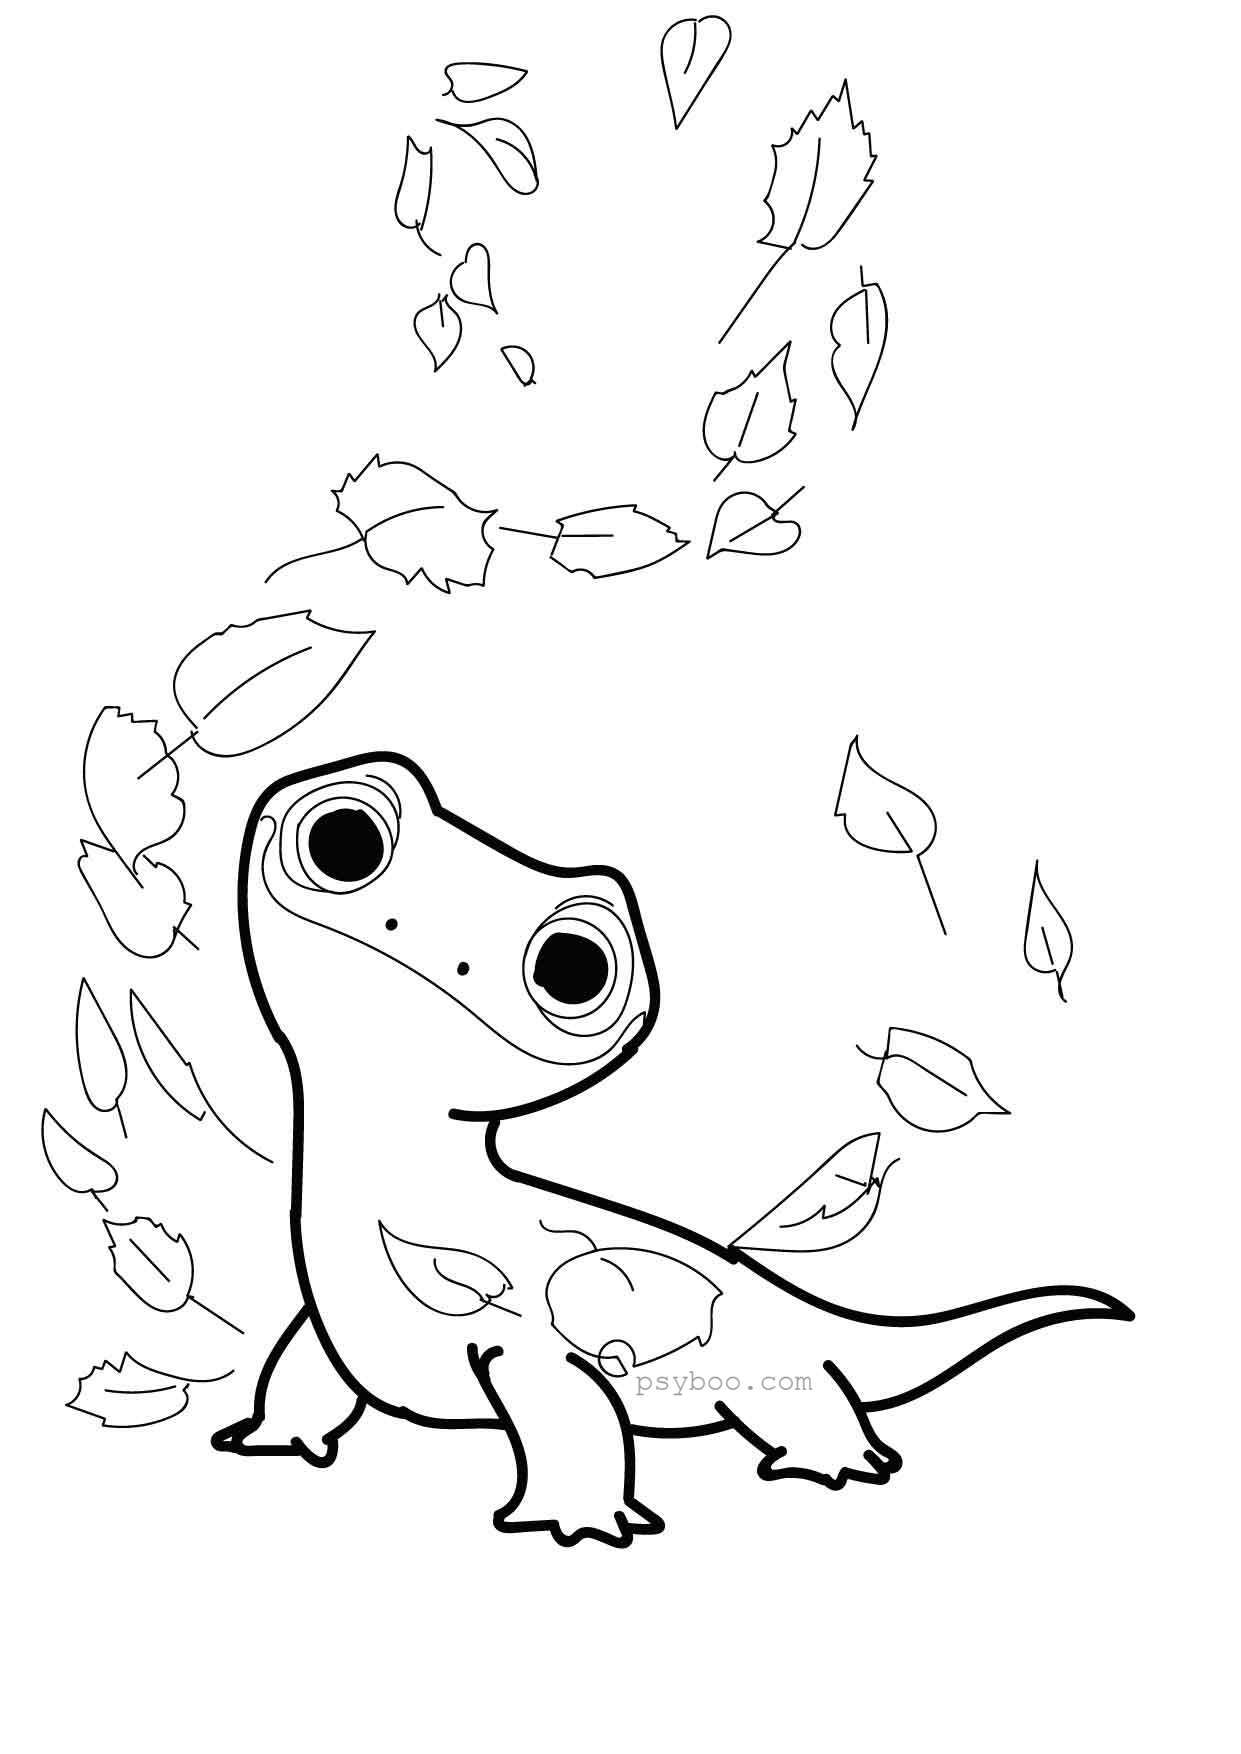 Bruni Lizard Frozen 2 Coloring Page In 2020 Disney Princess Coloring Pages Elsa Coloring Pages Frozen Coloring Pages